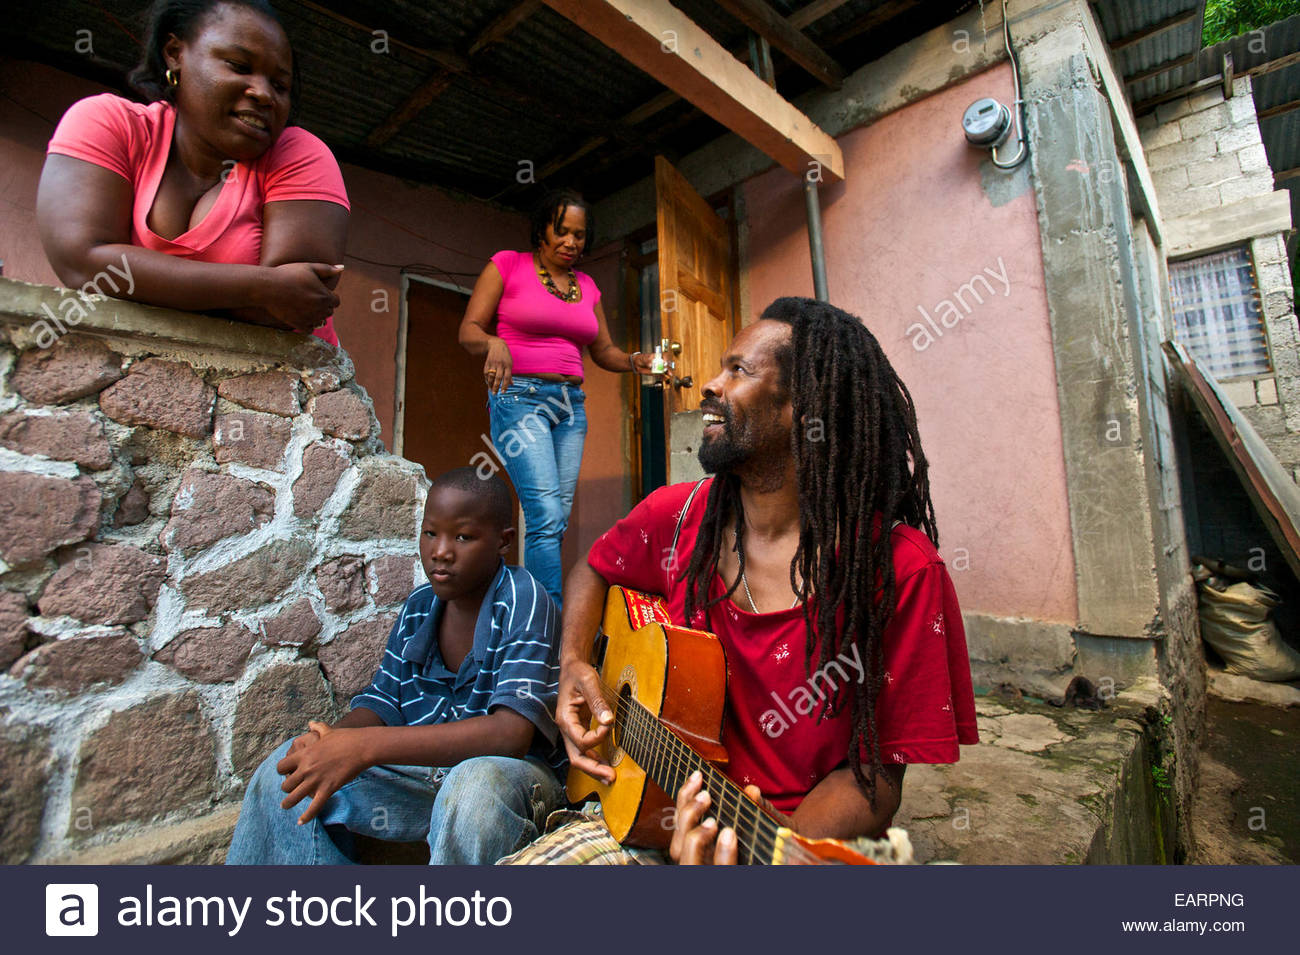 Damian Fontaine, a rastafarian singer, talks with his family at home. - Stock Image